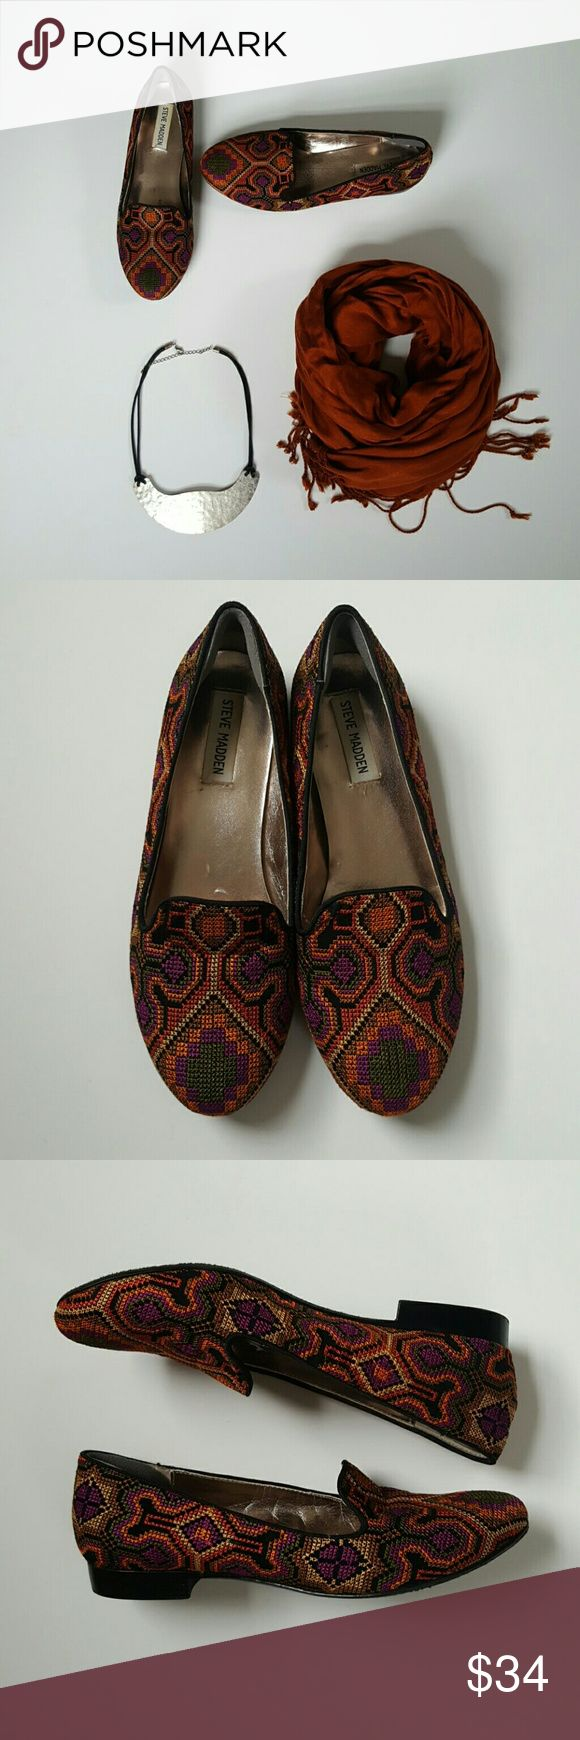 Steve Madden Loafers Perfect for fall! Embroidered slip on loafers, worn once! New heel cushion added for comfort Steve Madden Shoes Flats & Loafers